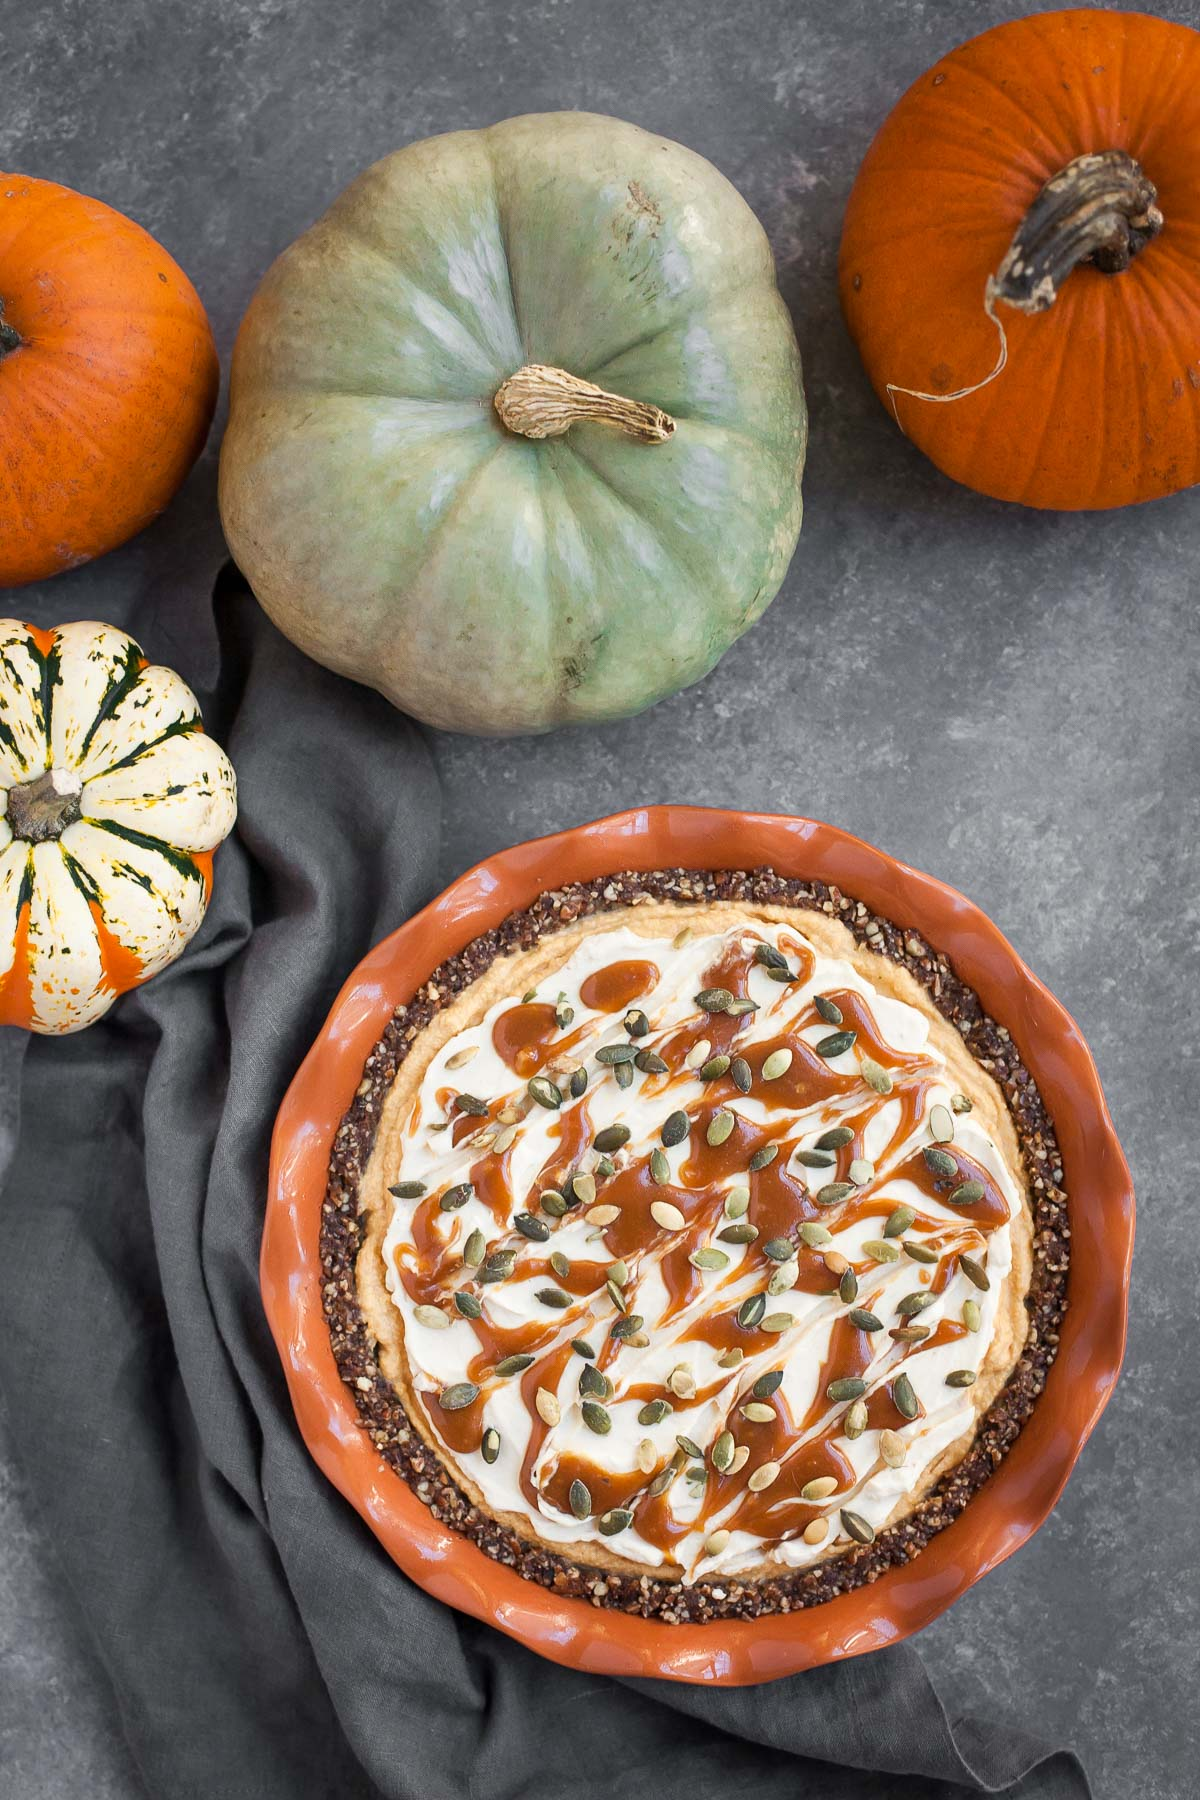 Pumpkin Caramel Cheesecake Pie (Gluten free, No bake)